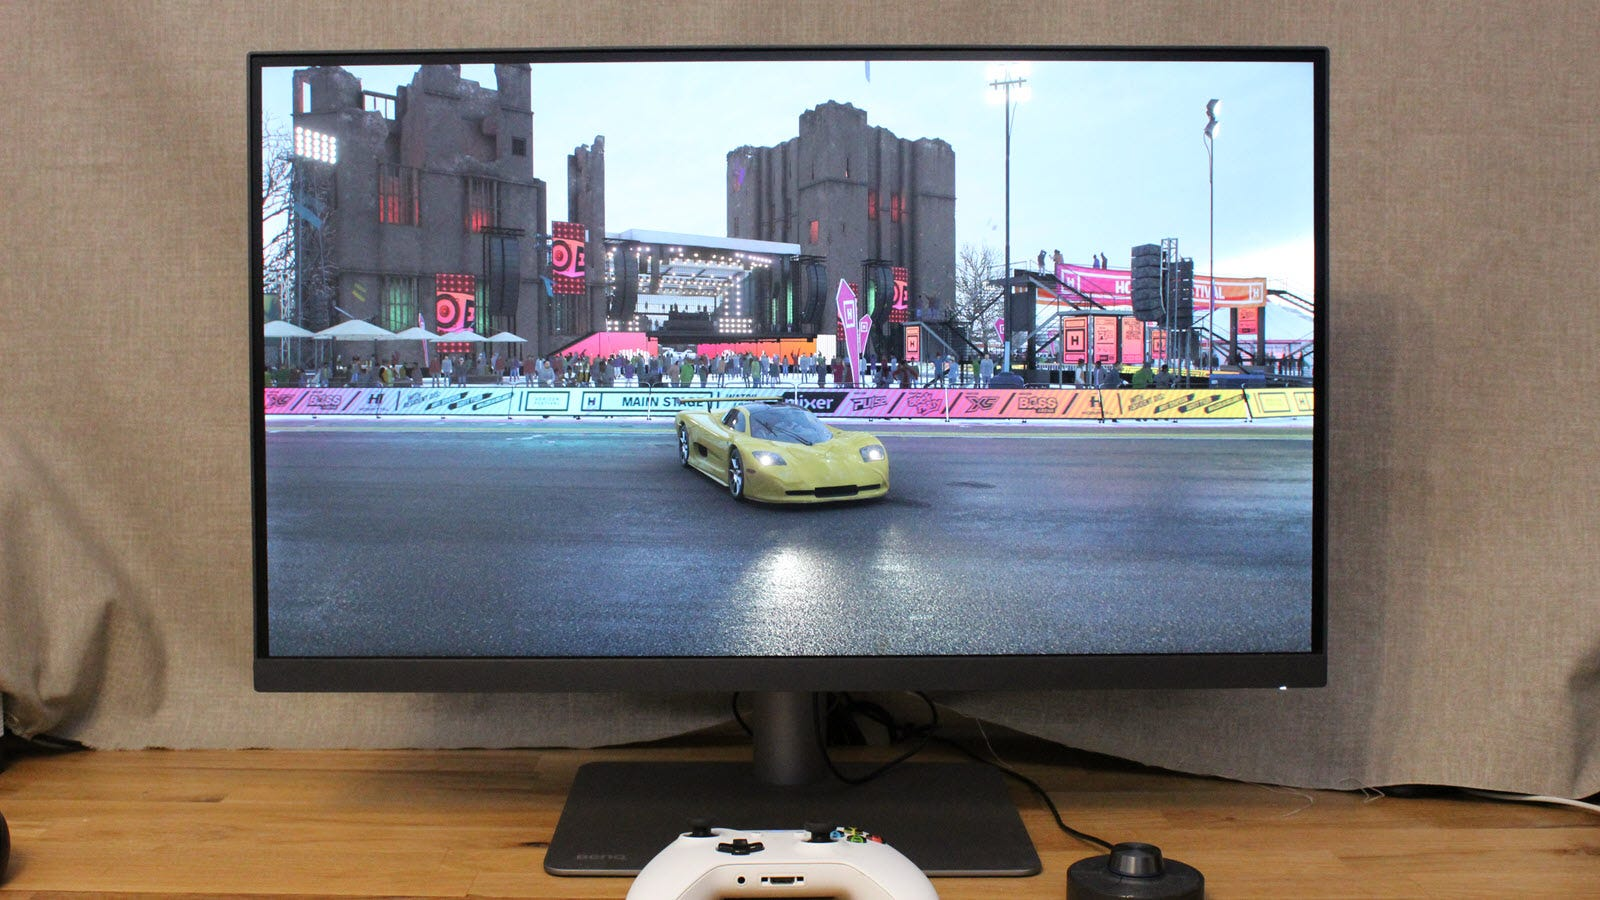 Forza Horizon 4 displayed on the monitor with Xbox controller.